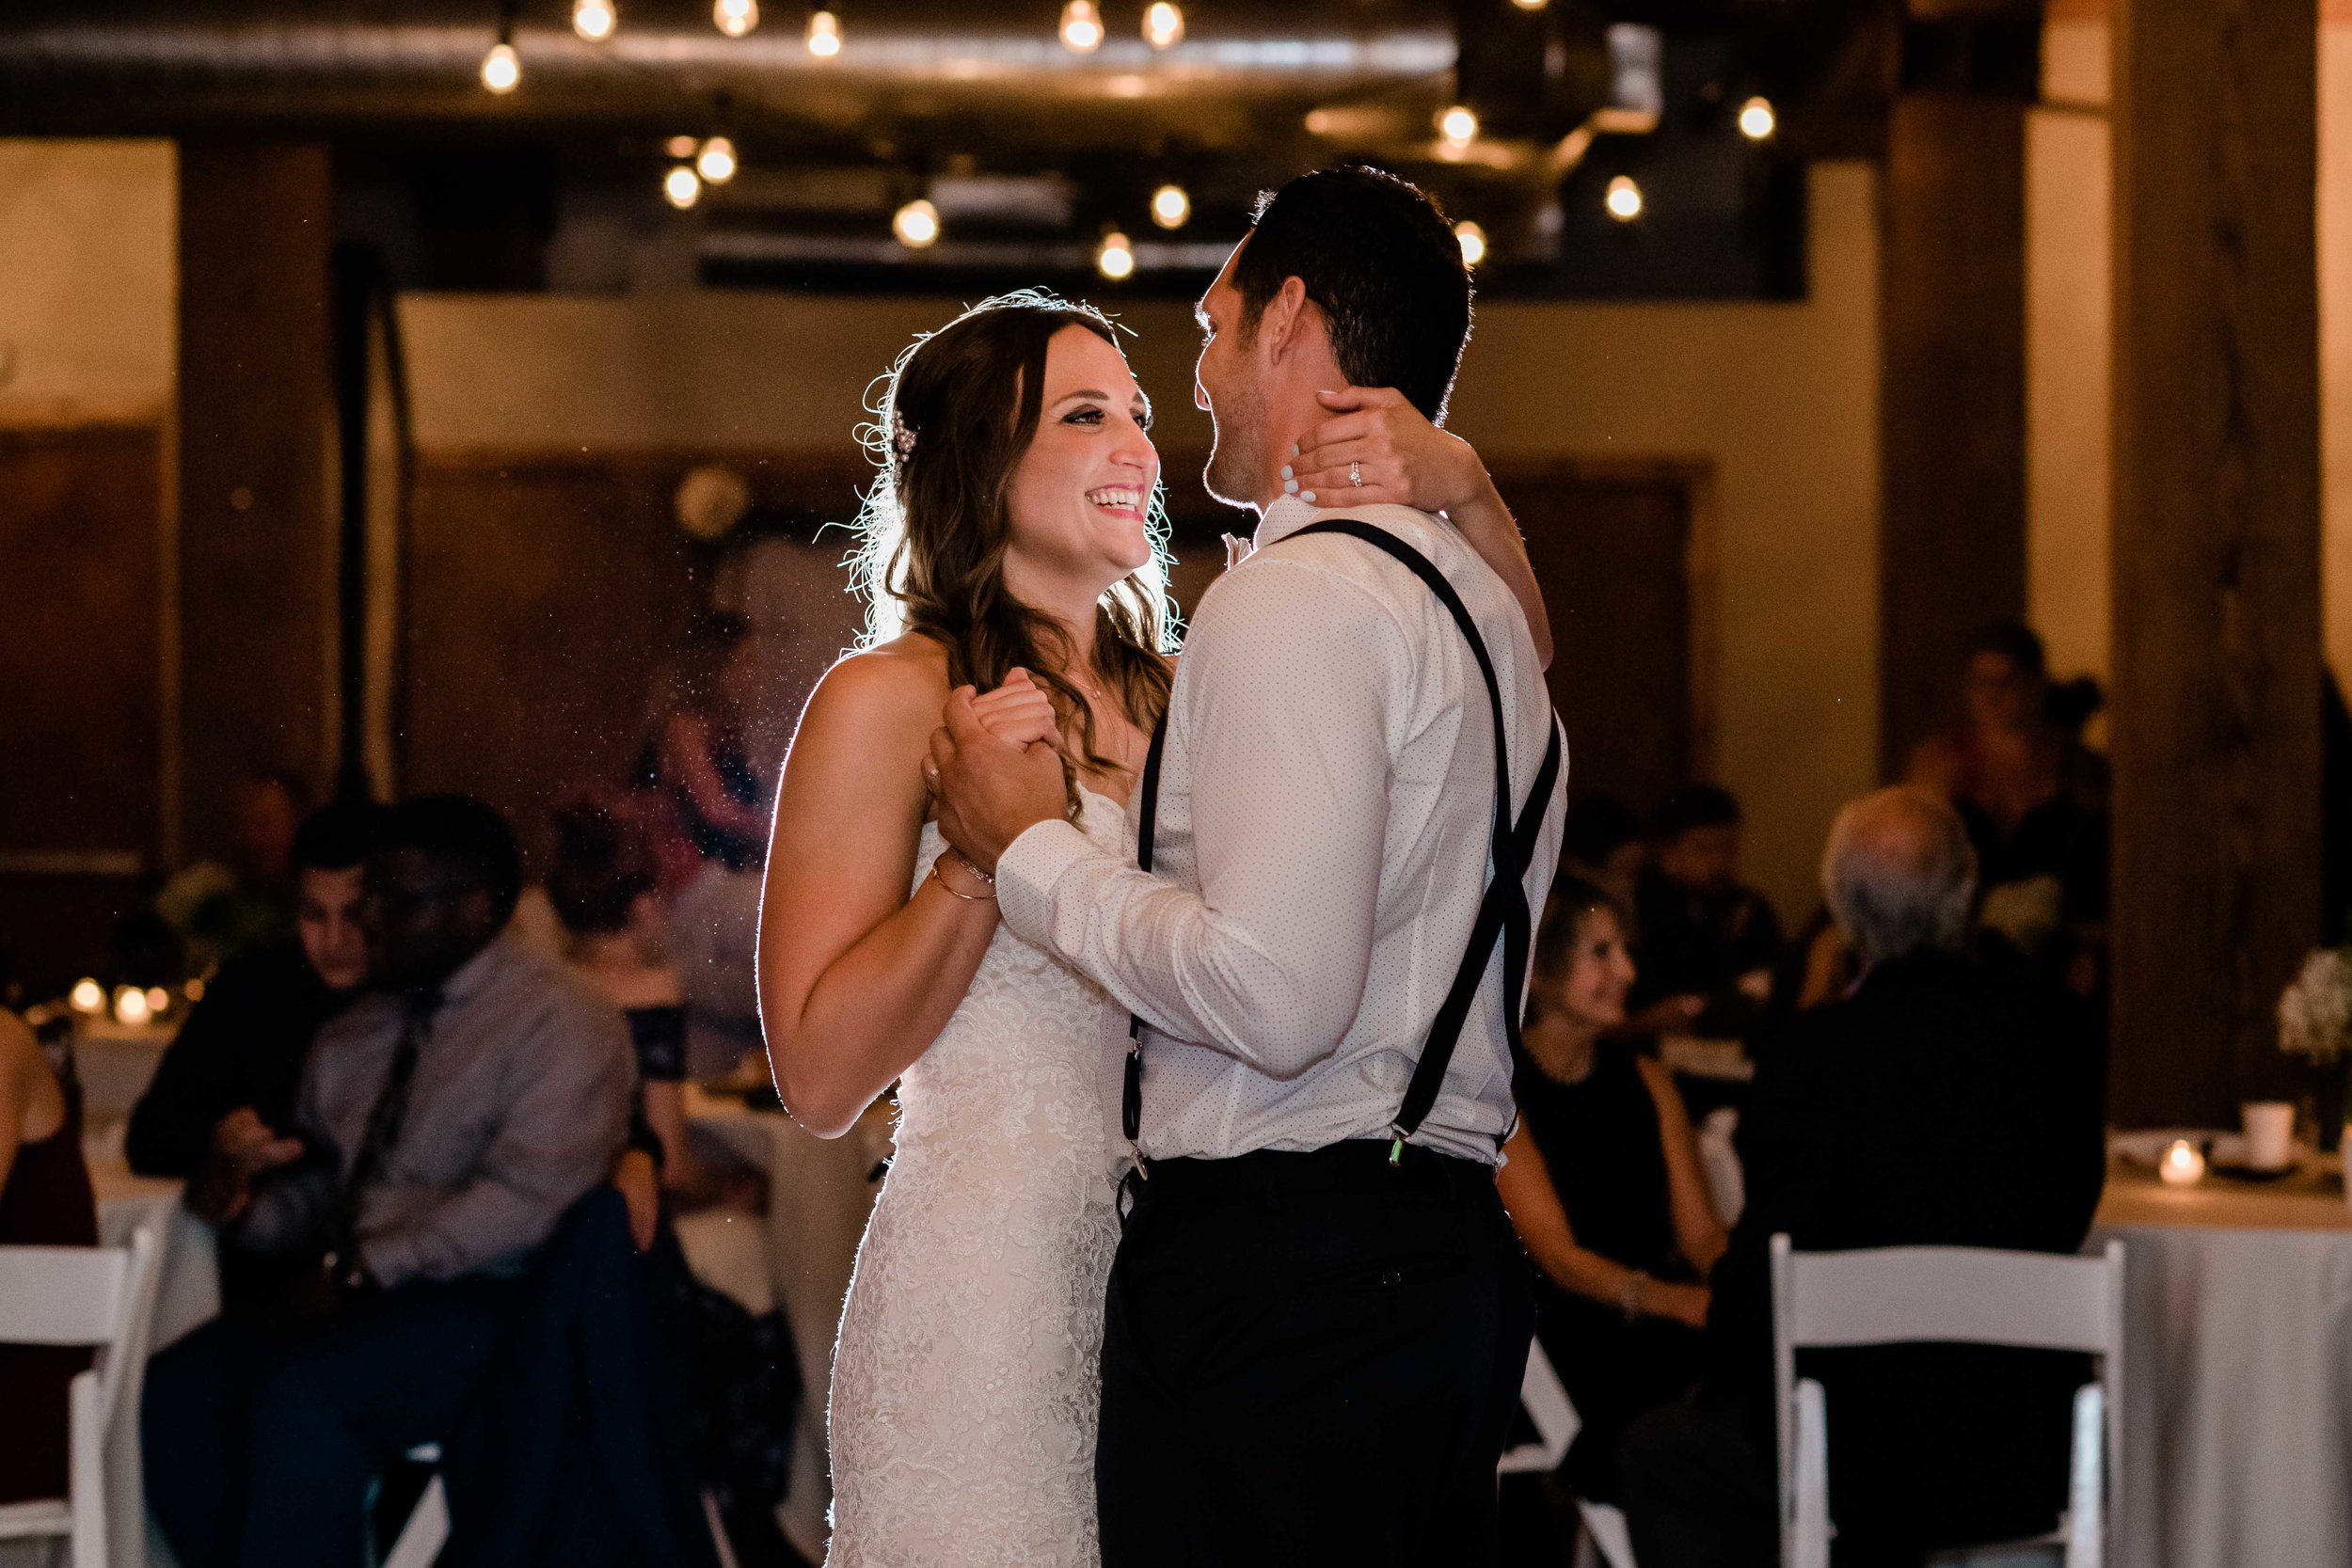 Bride smiles at groom during their first dance